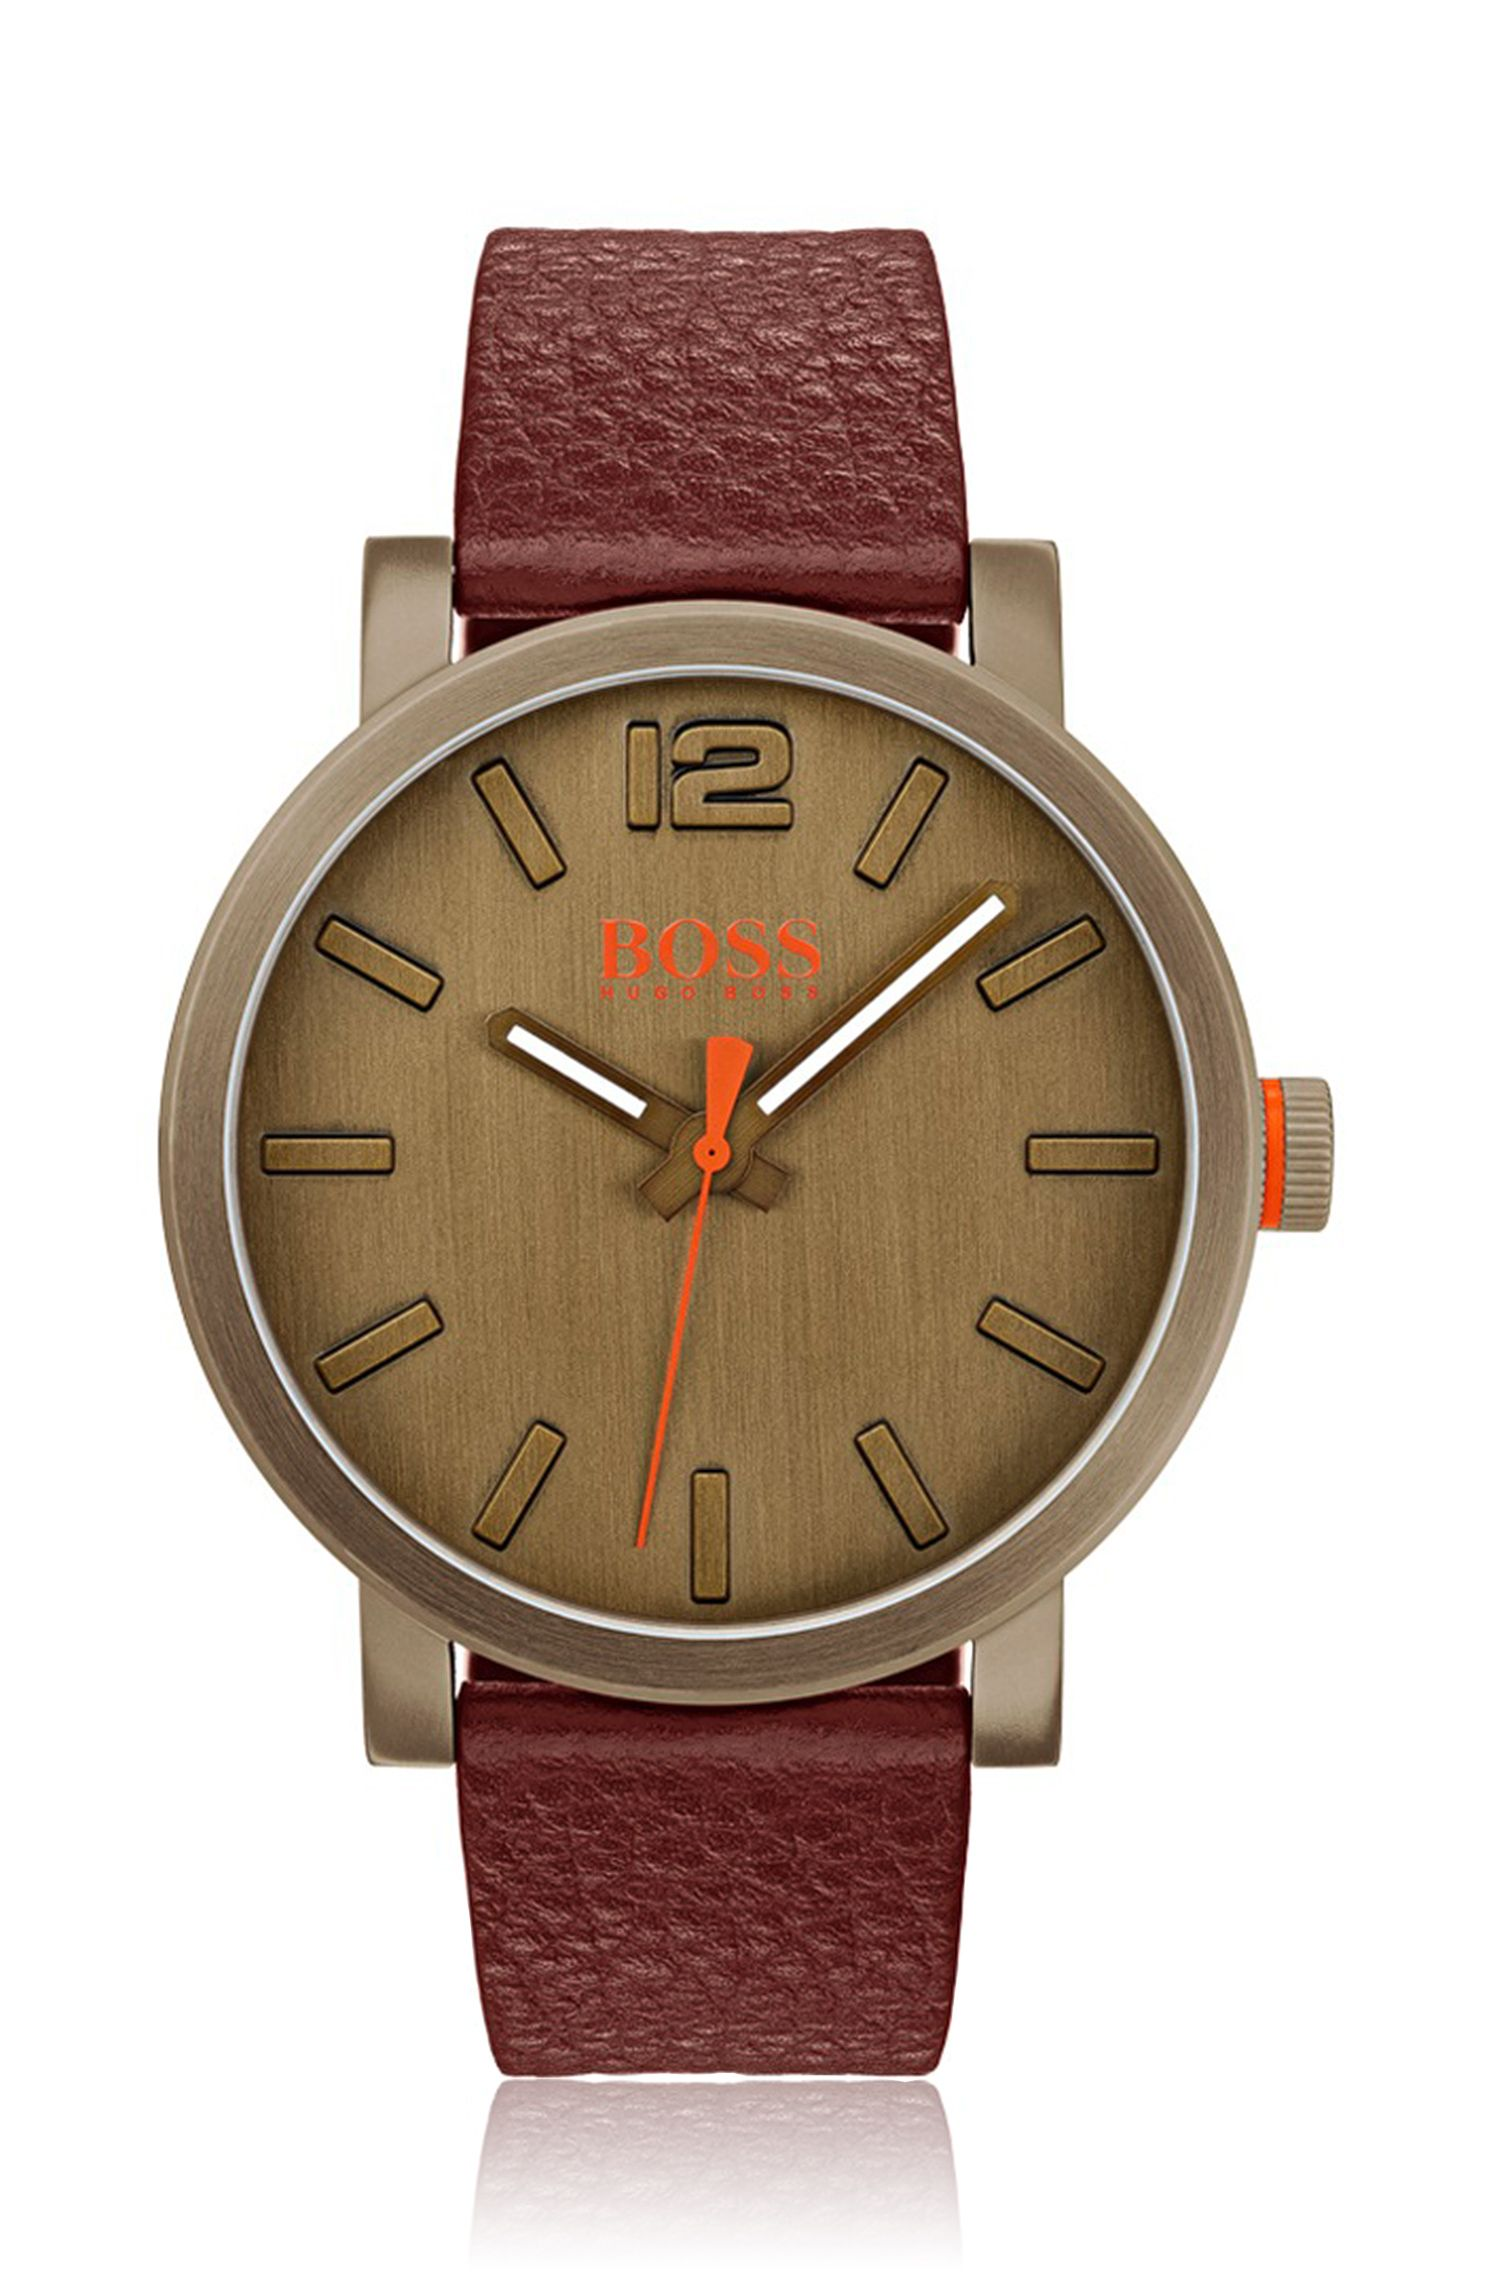 Leather-strap watch in khaki-plated stainless steel